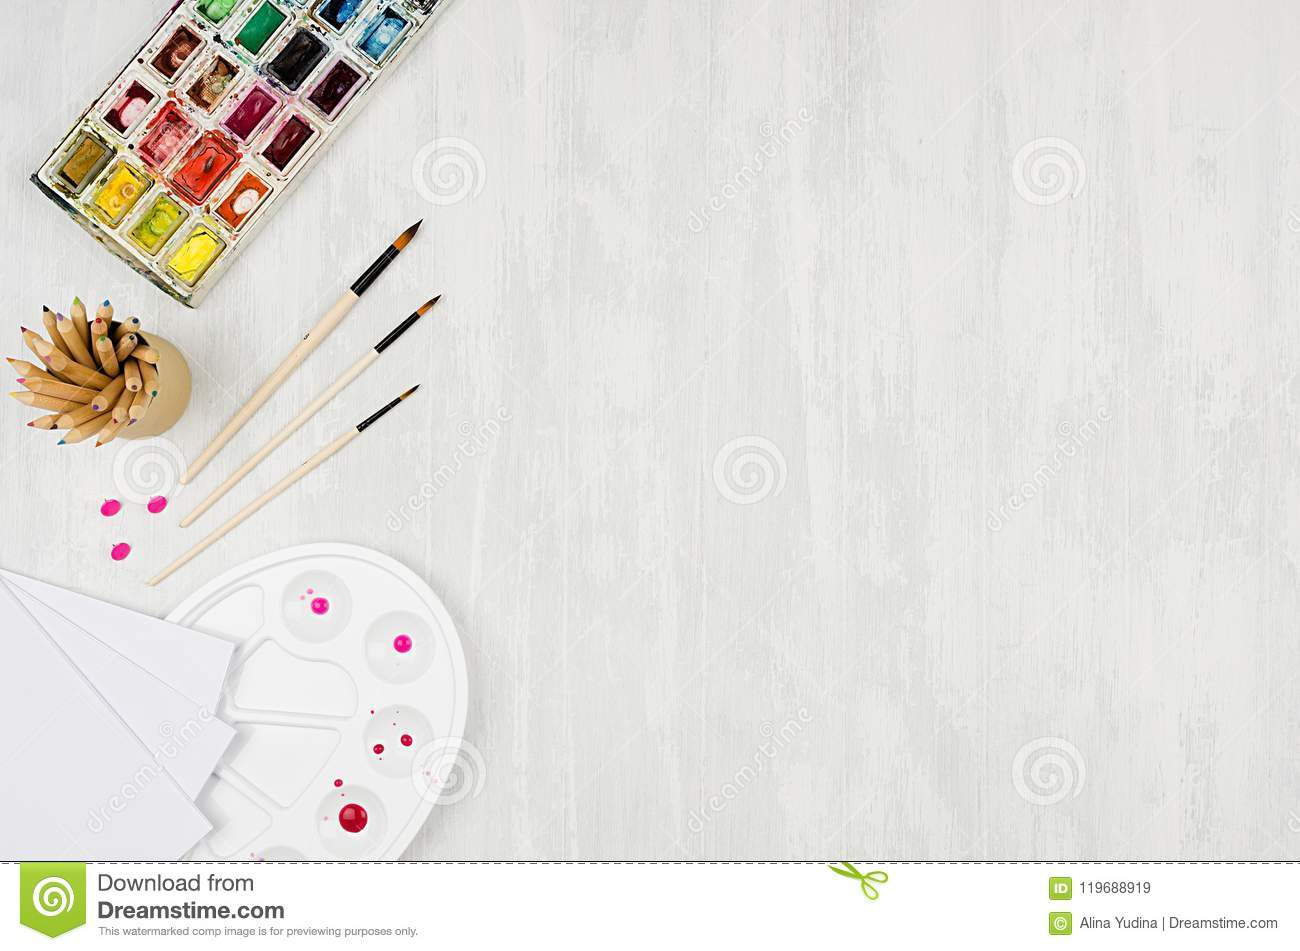 Workplace for drawings watercolor paints palette brushes